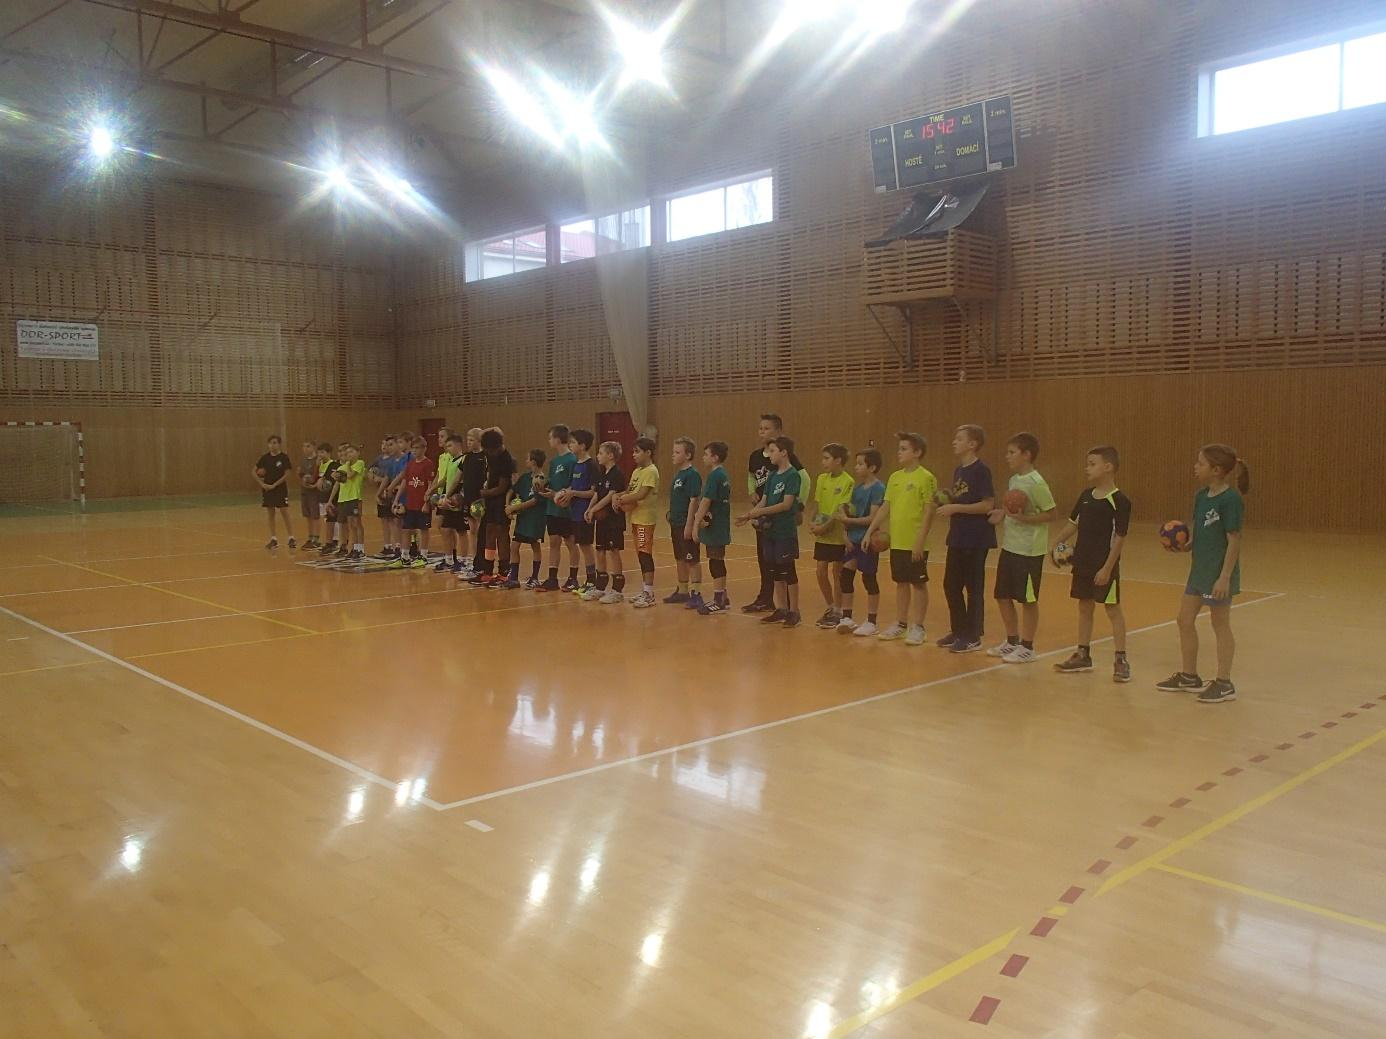 C:\Users\Pedagog\Pictures\Hanball camp ml. ž. 25.11.18\PB250122.JPG